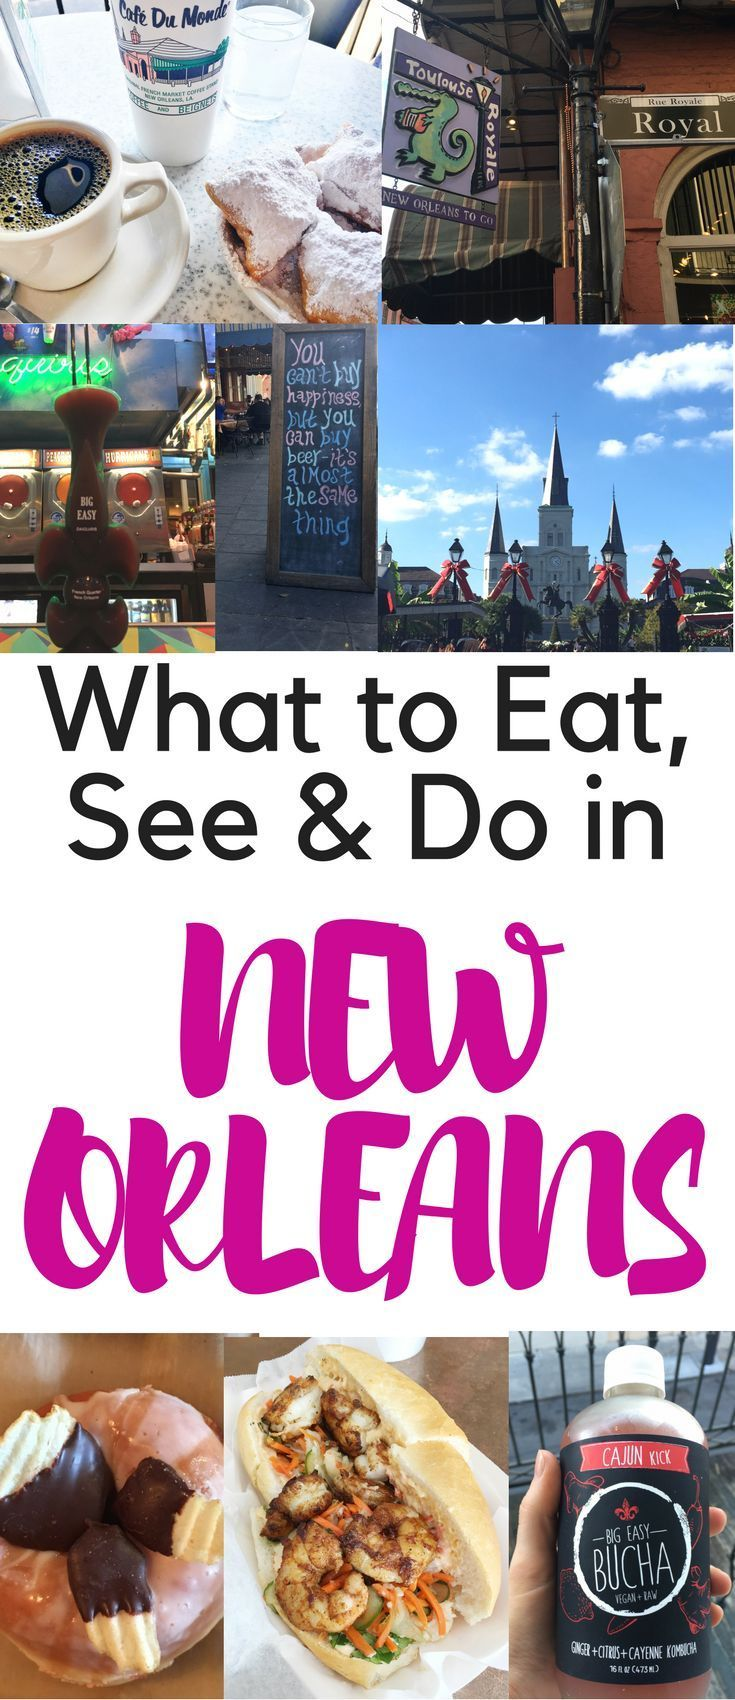 919 Best New Orleans Images On Pinterest Destinations Places To